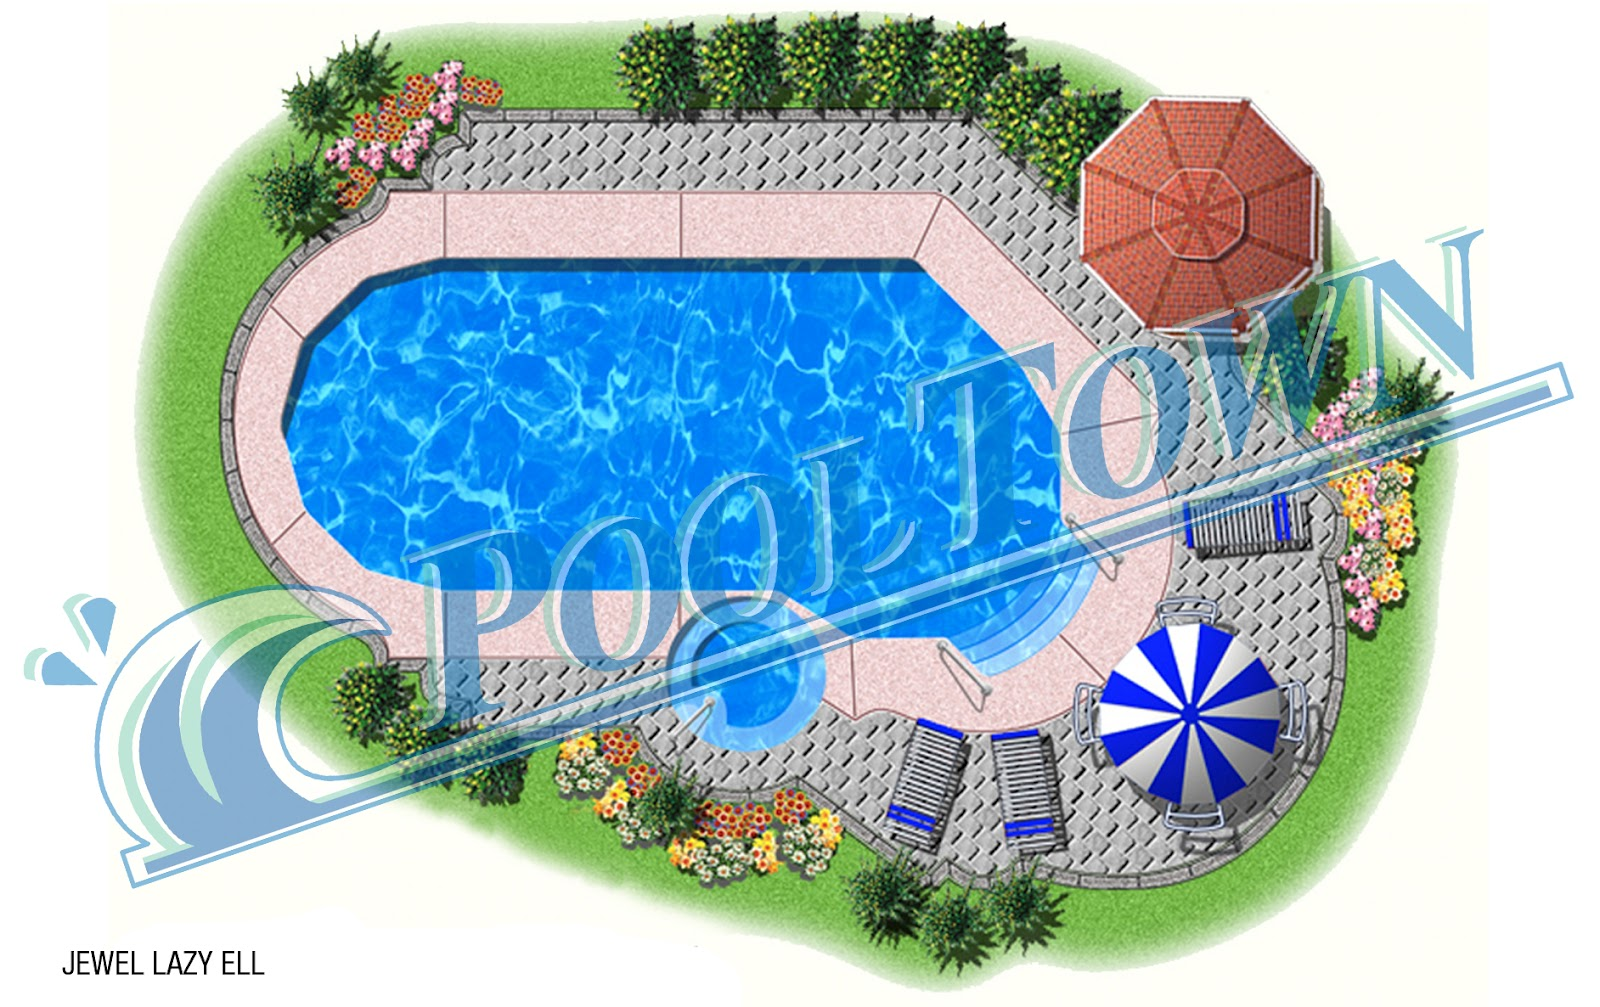 Professional Pool Designers recommend country pool Professional In Ground Pool Installation Team Will Be On Tobi Court Today Installing A New 16 X 37 Jewel Lazy Ell Our Professional Pool Designers Can